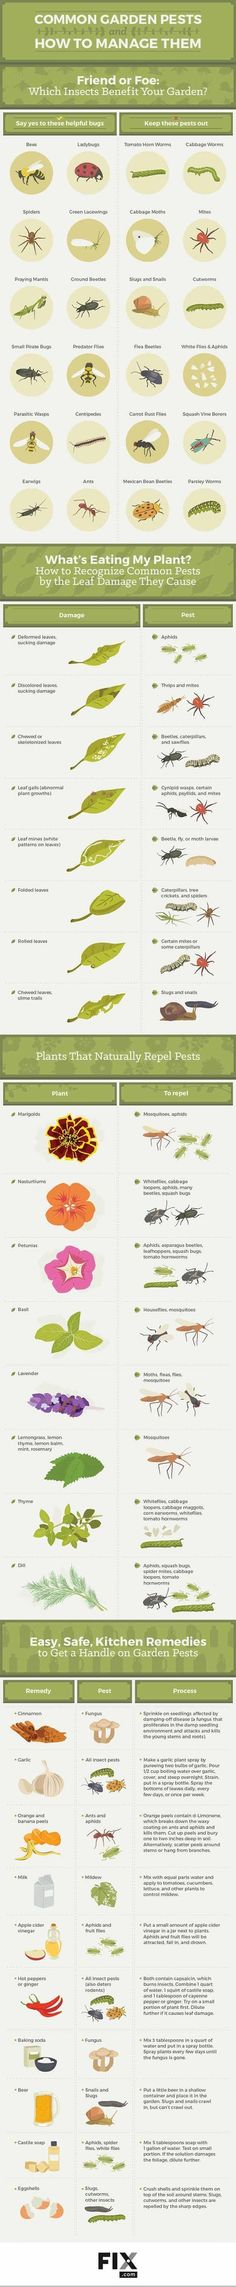 Garden Pests Identification & Natural Pest Control Ideas by Pioneer Settler at pioneersettler.co...